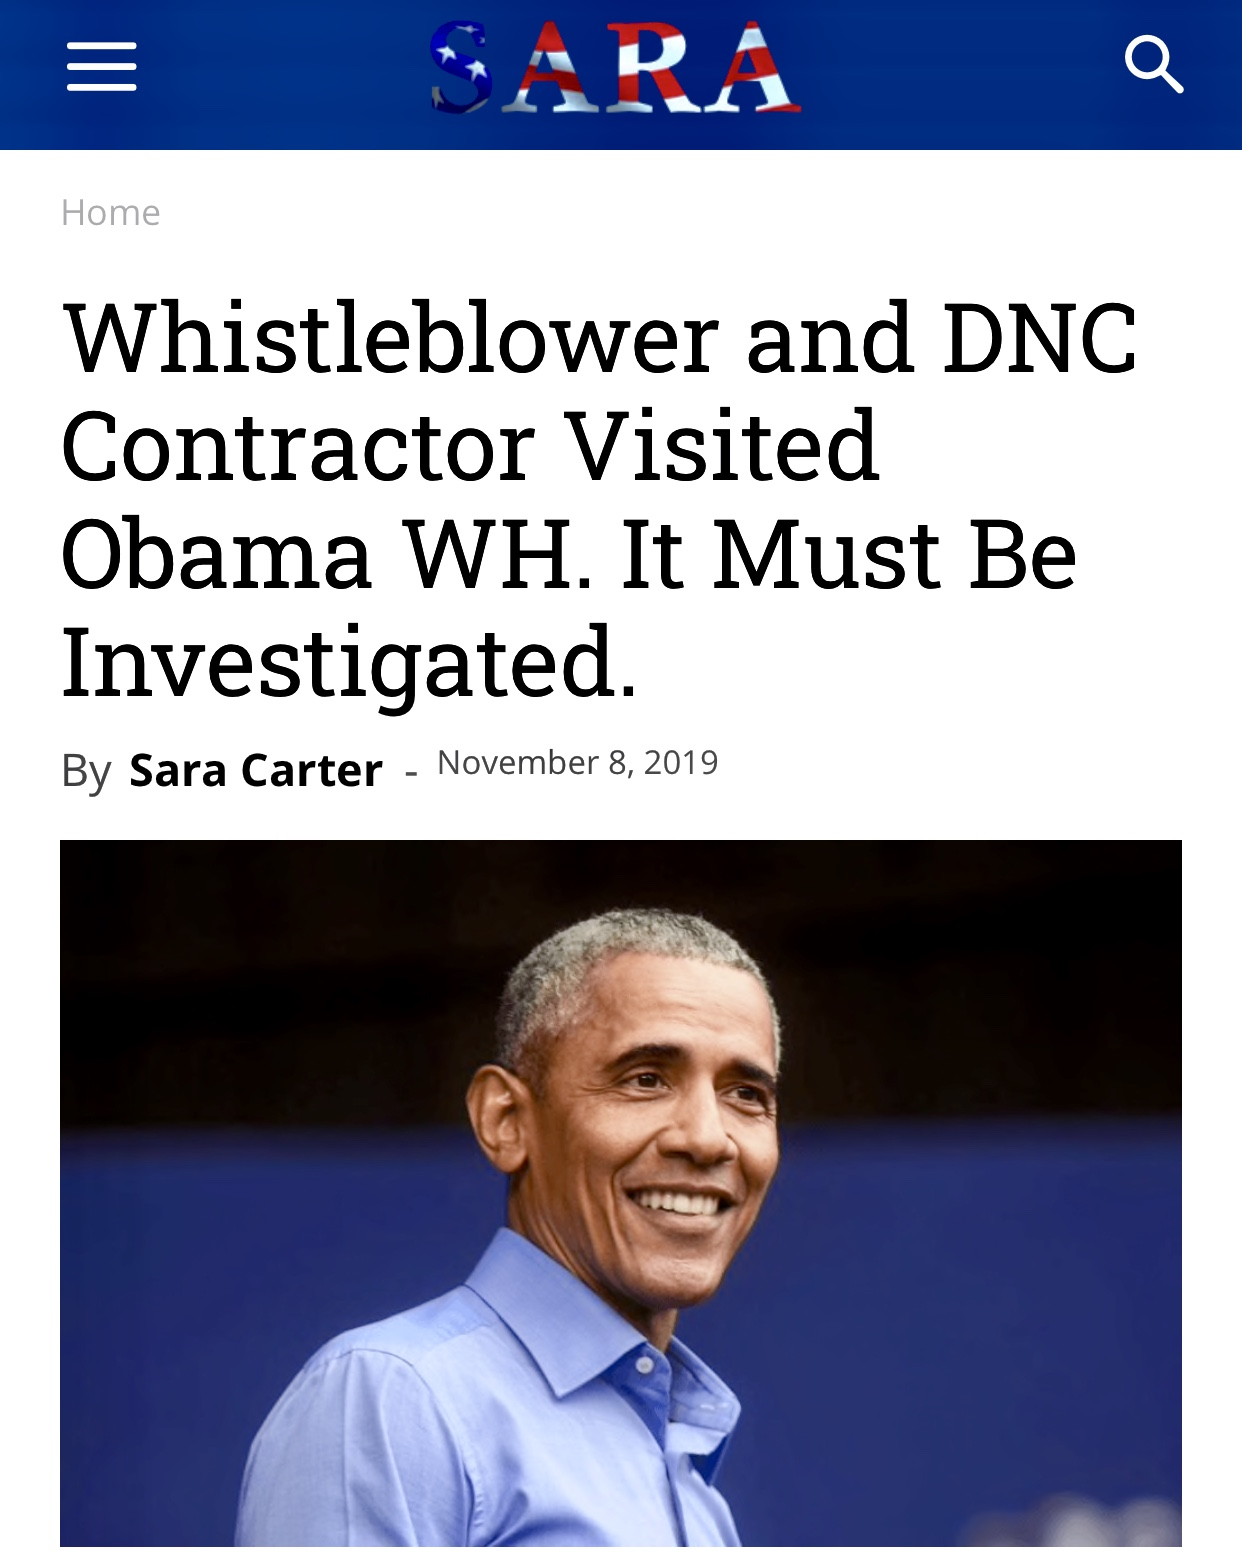 Whistleblower and DNC Contractor Visited Obama WH